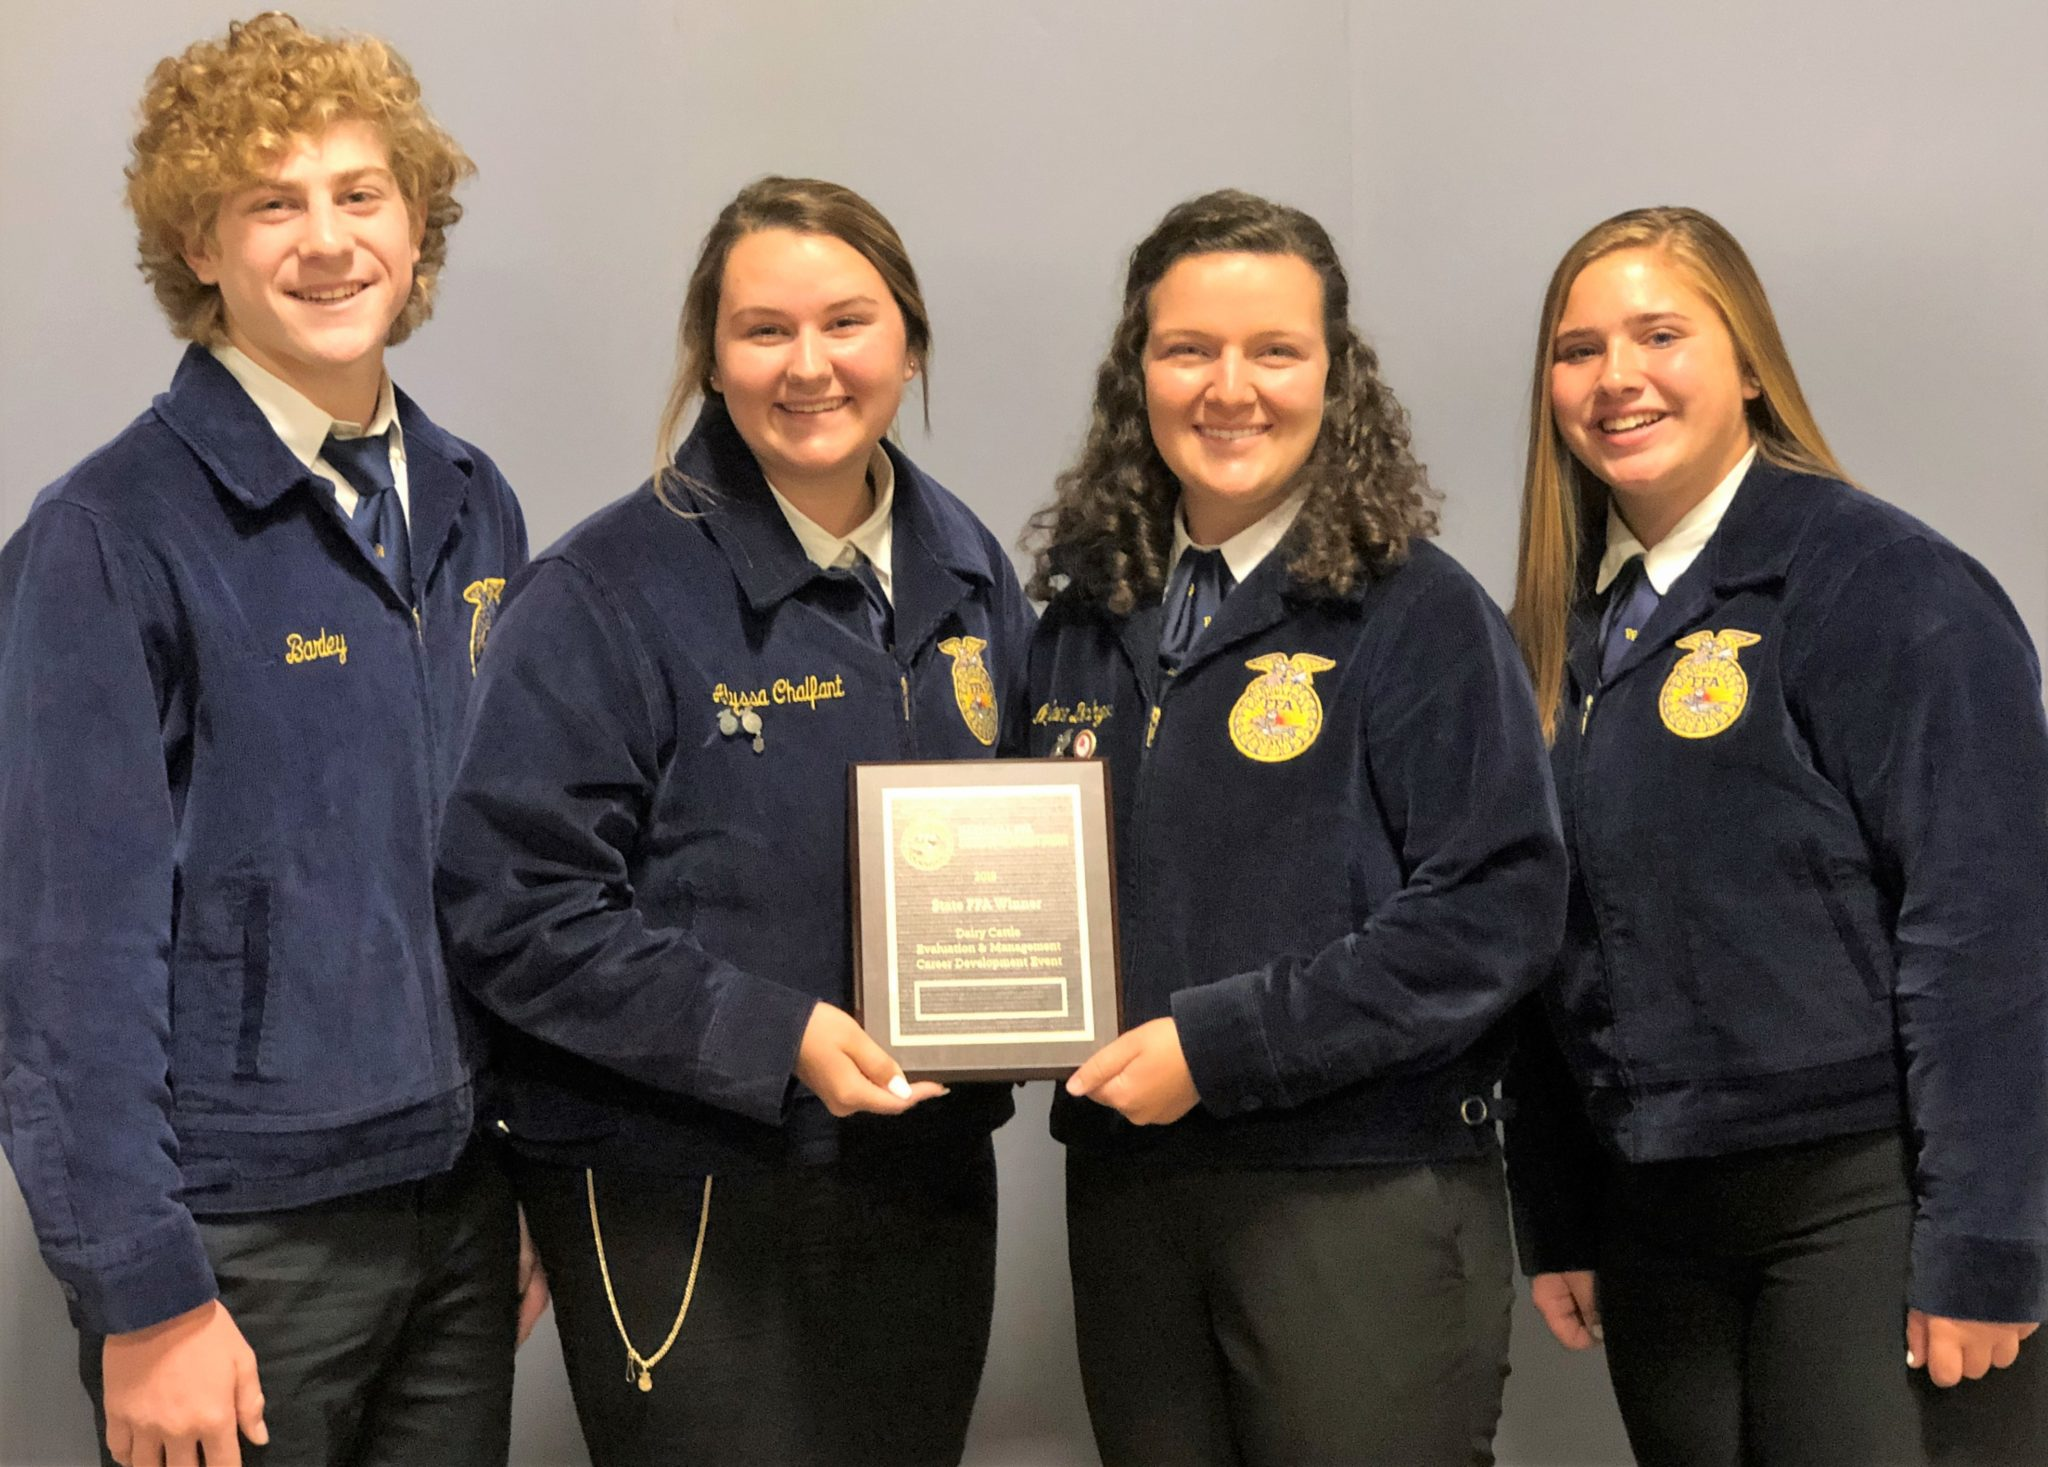 The Dairy Cattle Evaluation Team